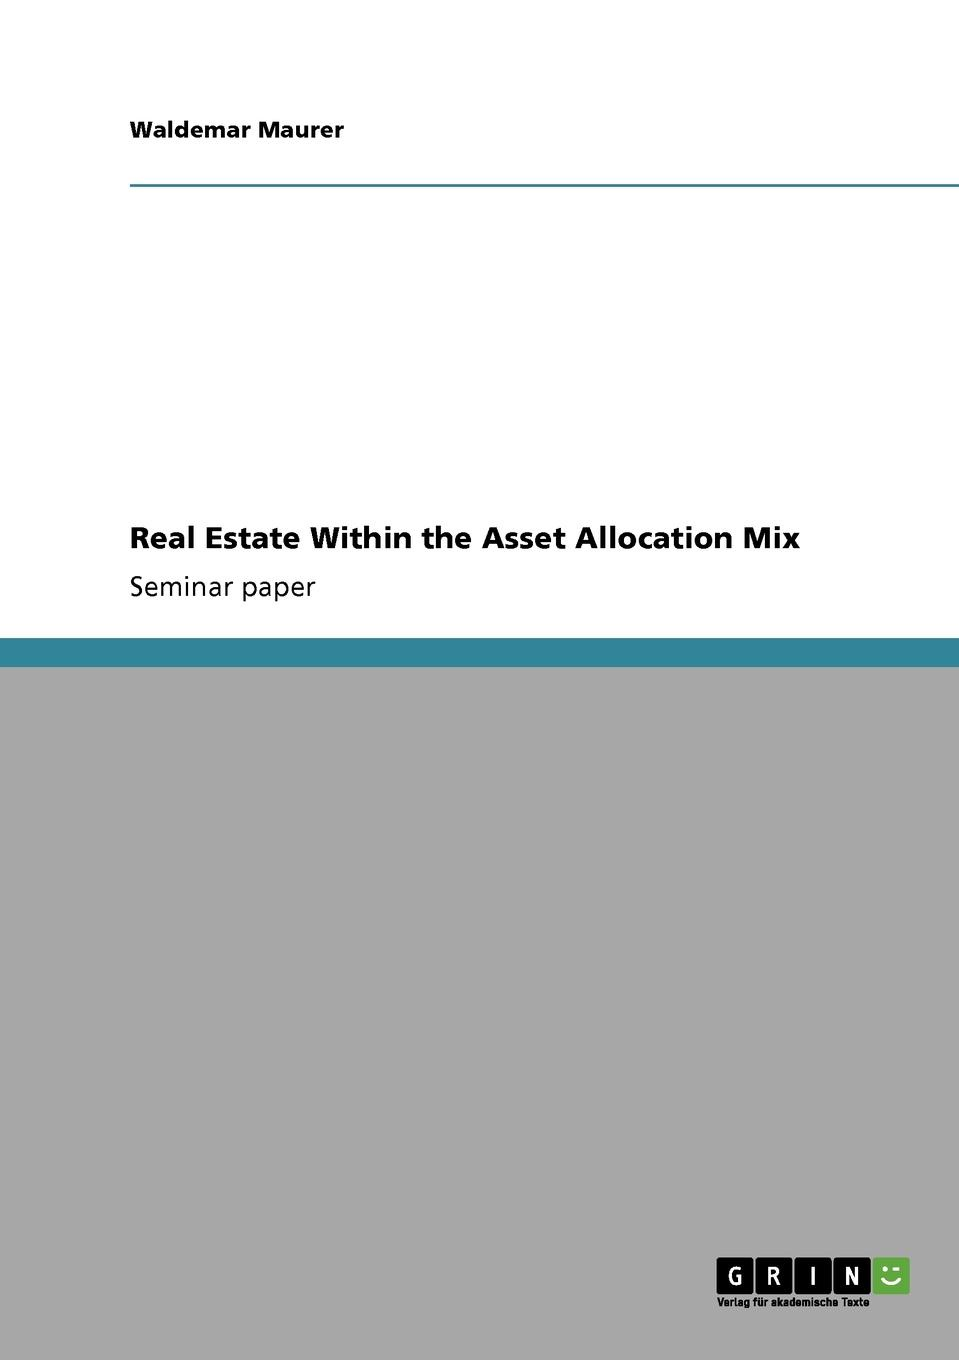 Waldemar Maurer Real Estate Within the Asset Allocation Mix david parker global real estate investment trusts people process and management